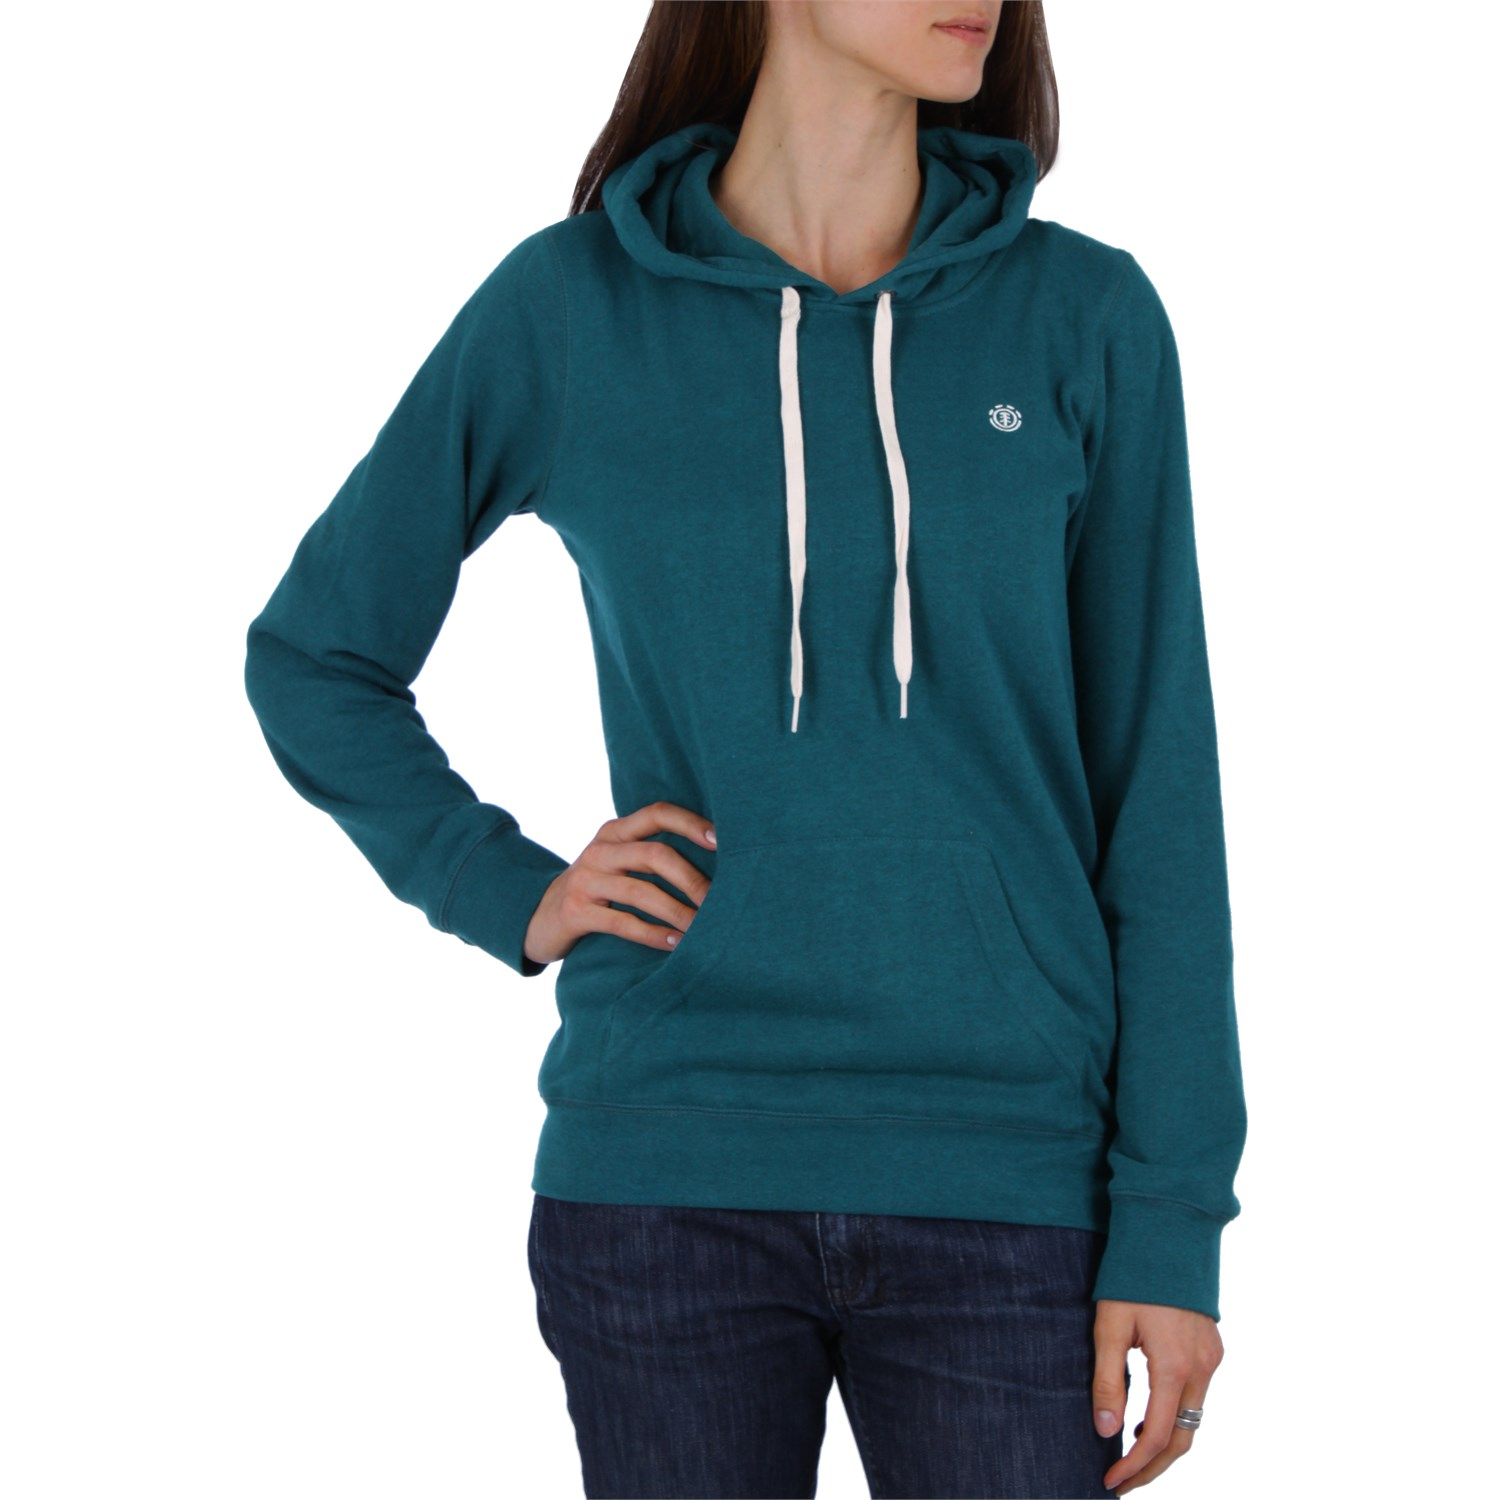 Shop a variety of Sweatshirts & Hoodies at Forever Get incredible deals on everything from cozy pullovers to trendy cropped hoodies – we have all the fresh takes on sweatshirts + hoodies you need.